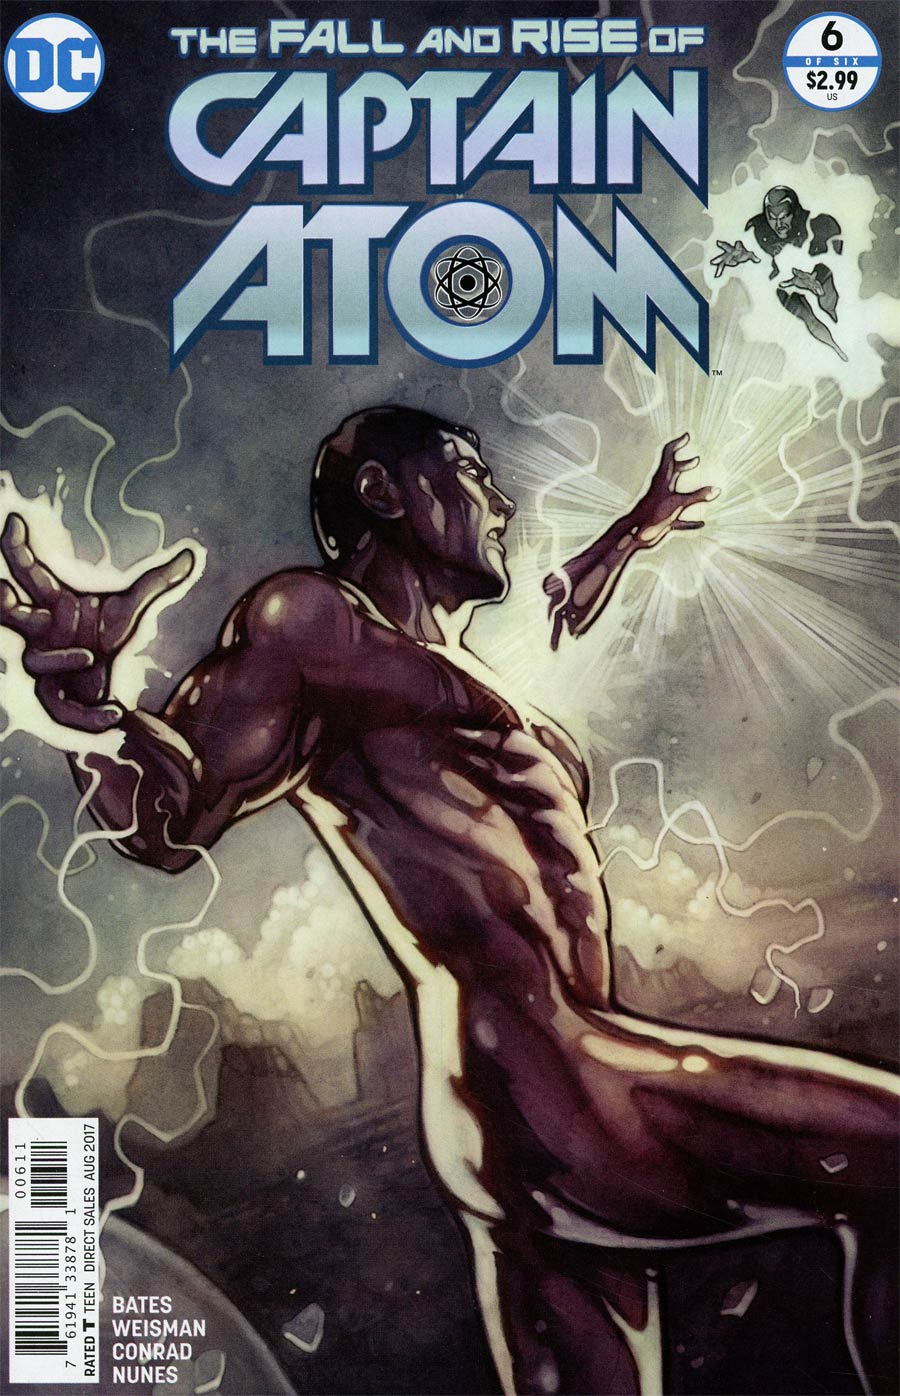 Fall And Rise Of Captain Atom #6